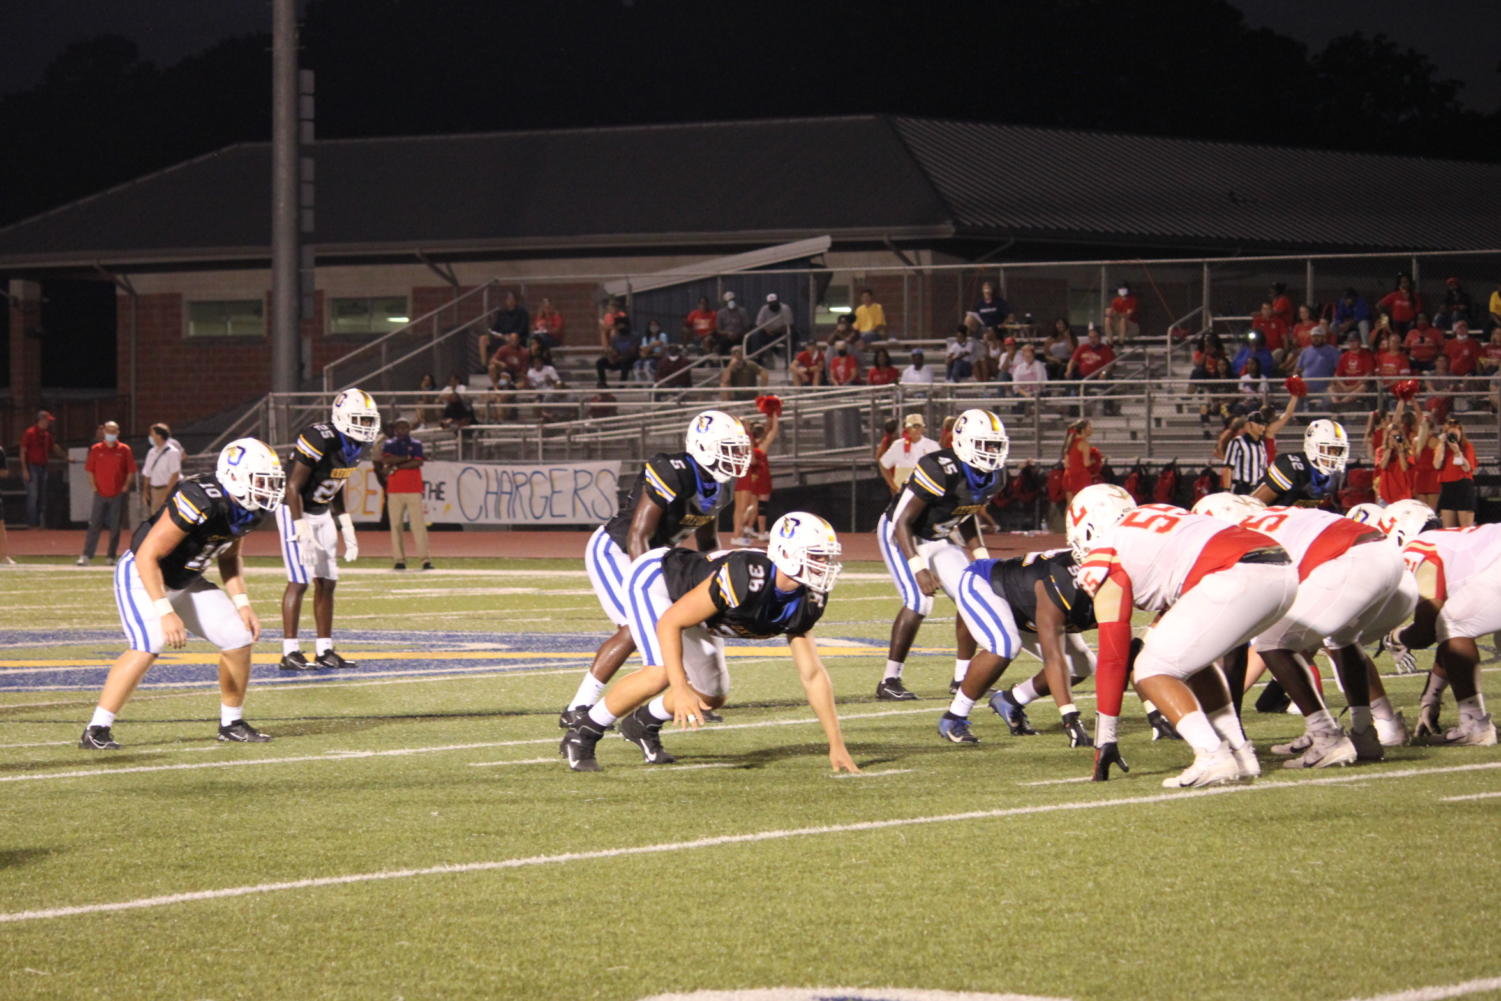 The Chargers line up against the Lafayette Commodores in last years Crosstown Classic, which took place on Friday, September 11, 2020. The Chargers won the game 33-22.